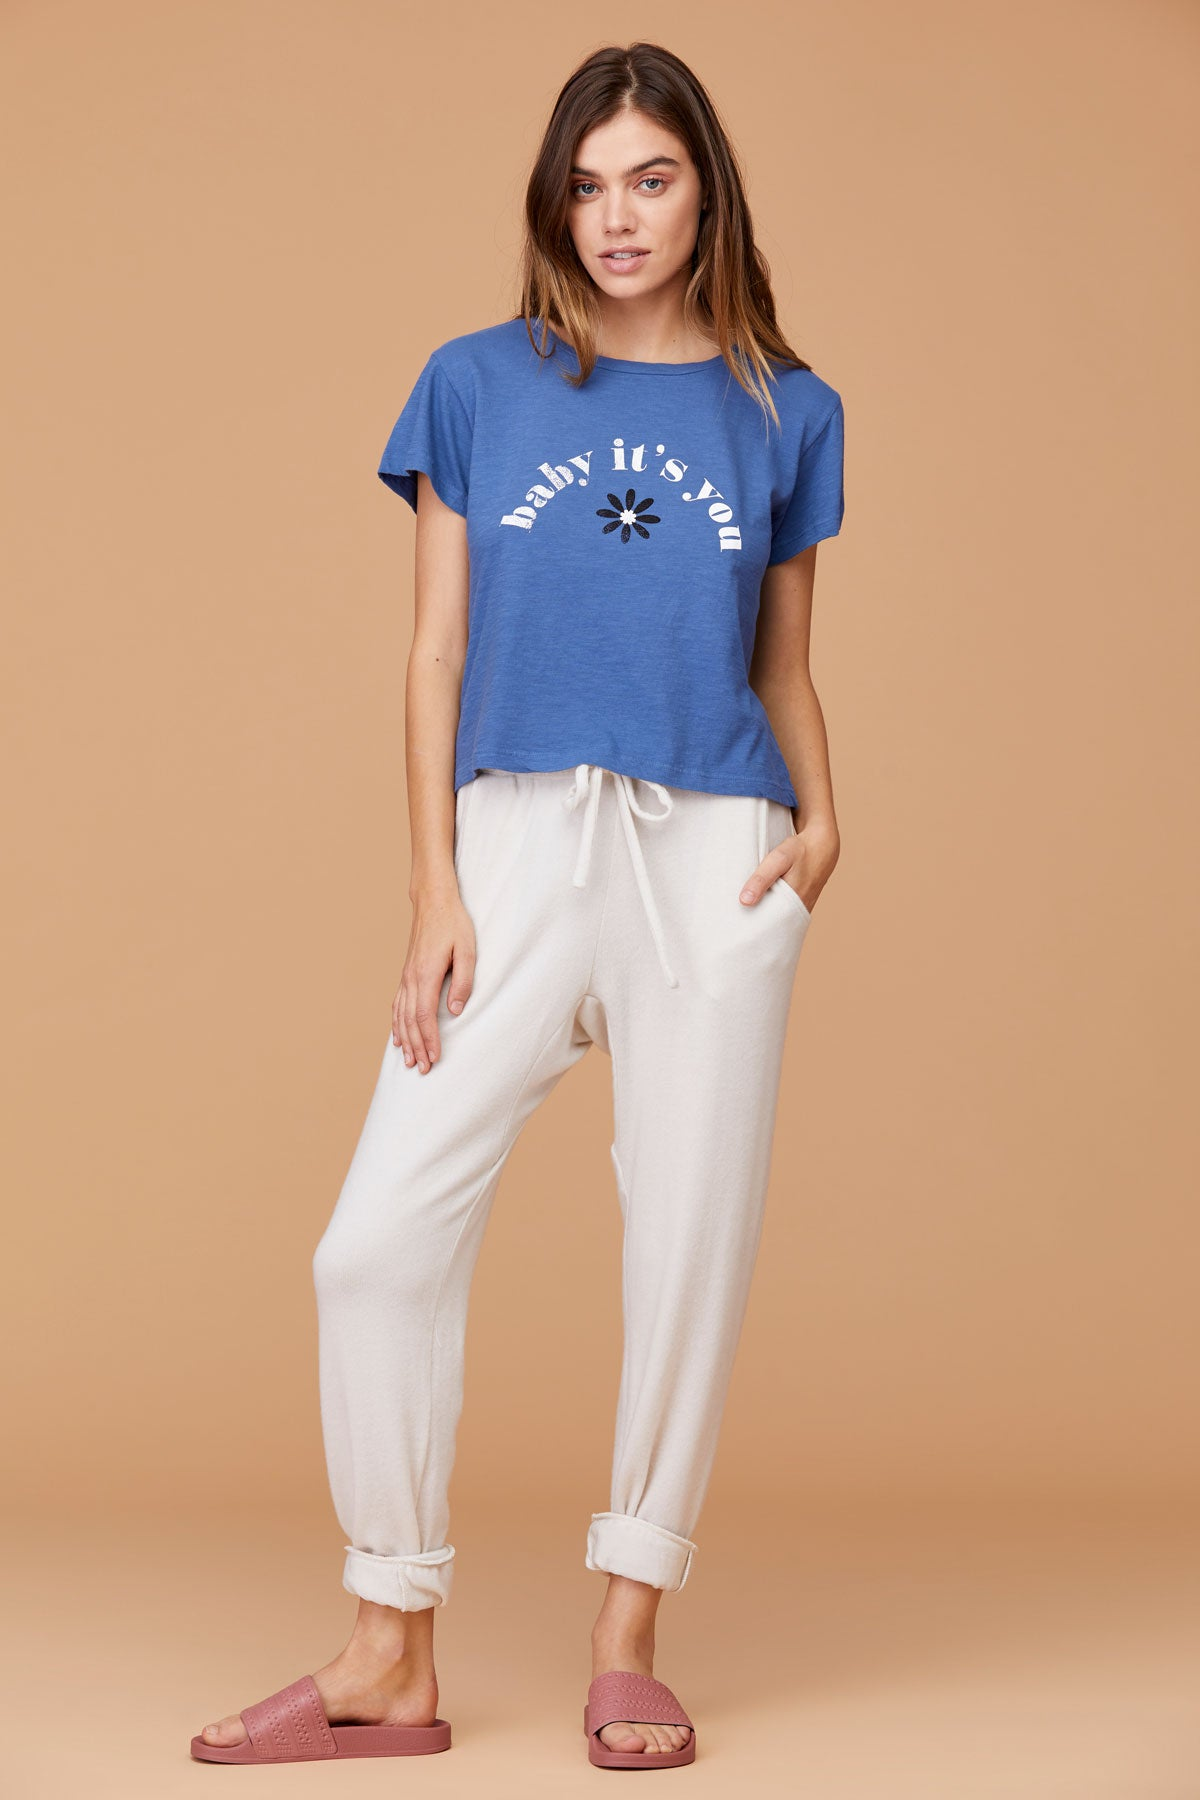 LNA Baby It's You Blue Graphic Tee